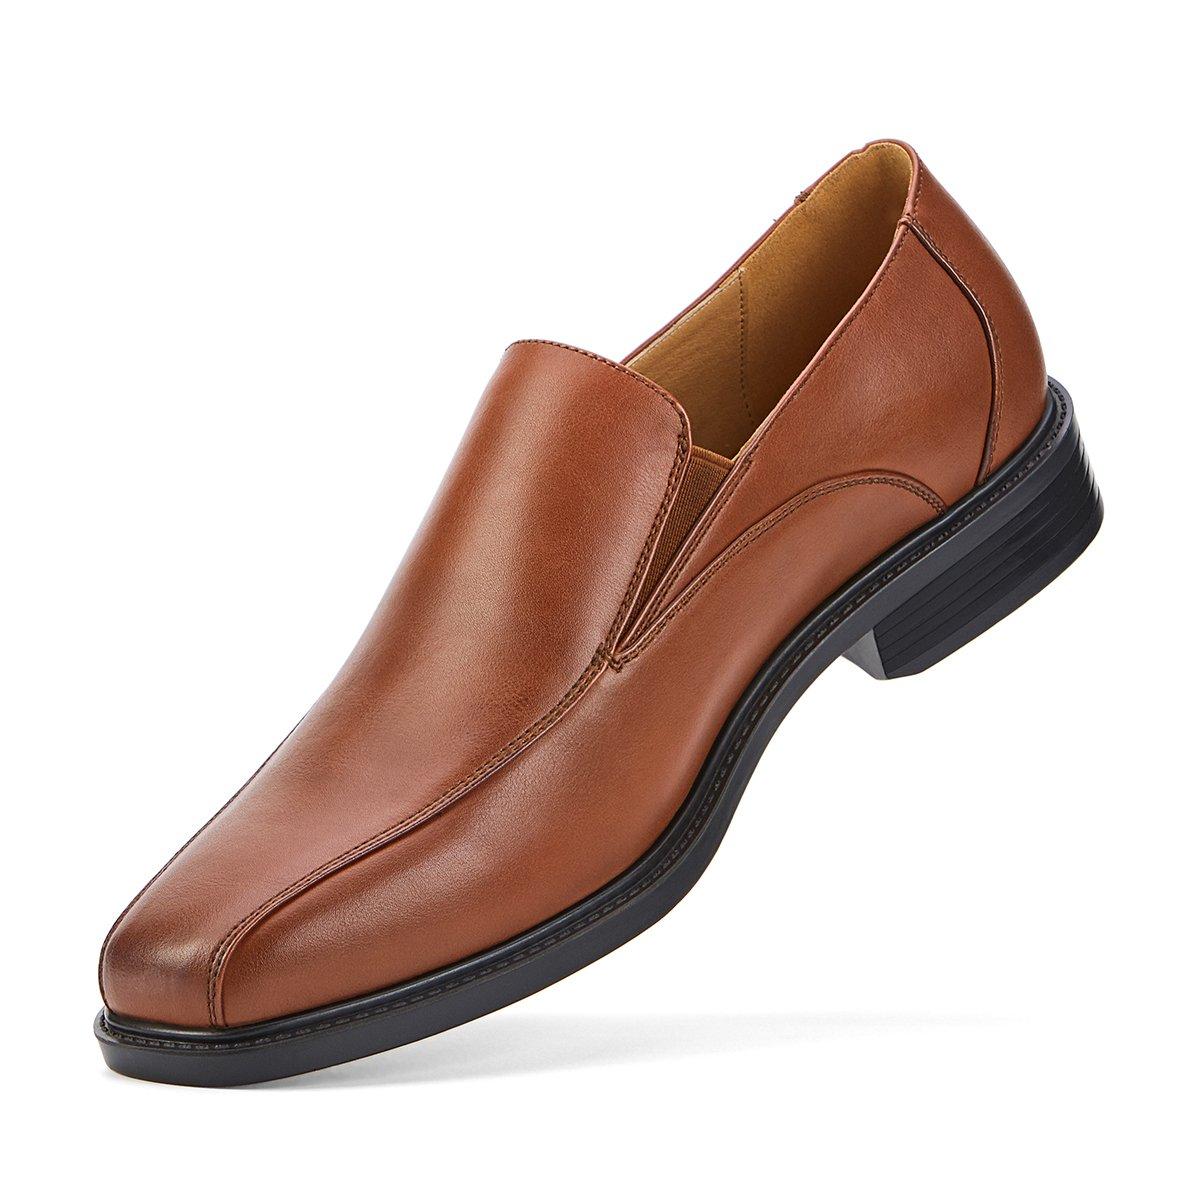 SEMANS Men's Dress Shoes Slip On Formal Leather Loafer Shoes Stylish Bicycle Toe Brown 11 D(M) US